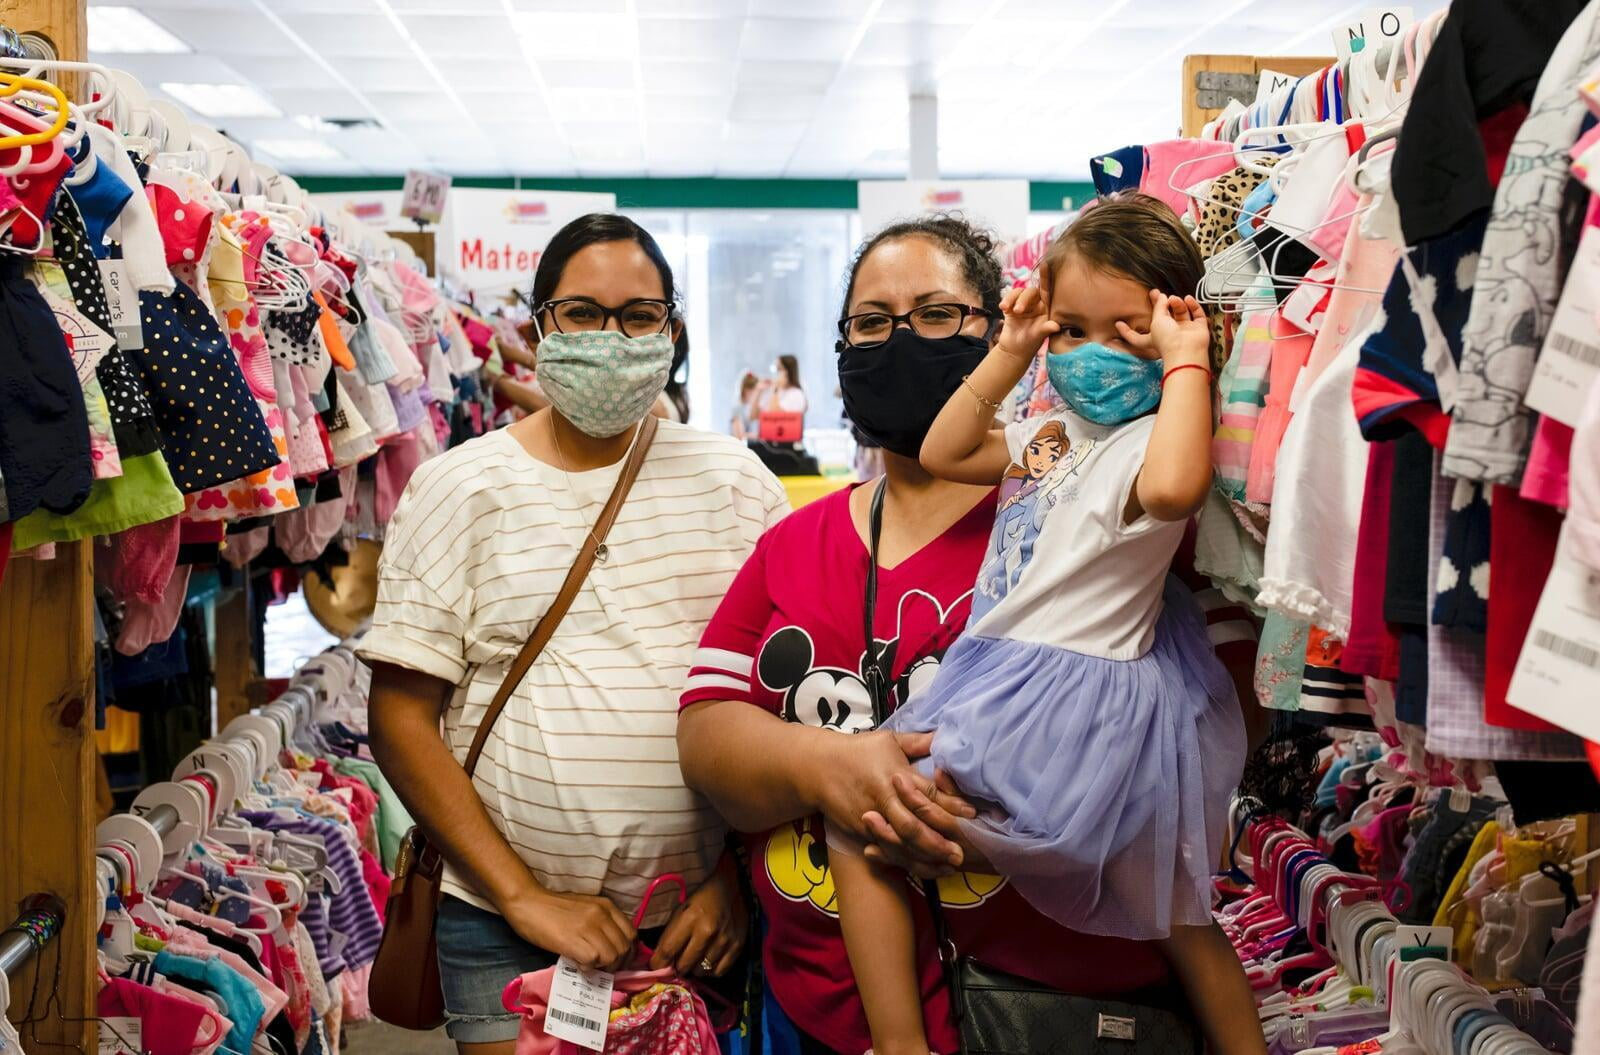 Two masked moms—one holding a child with a mask, the other pregnant—shop for their families at the local JBF sale.